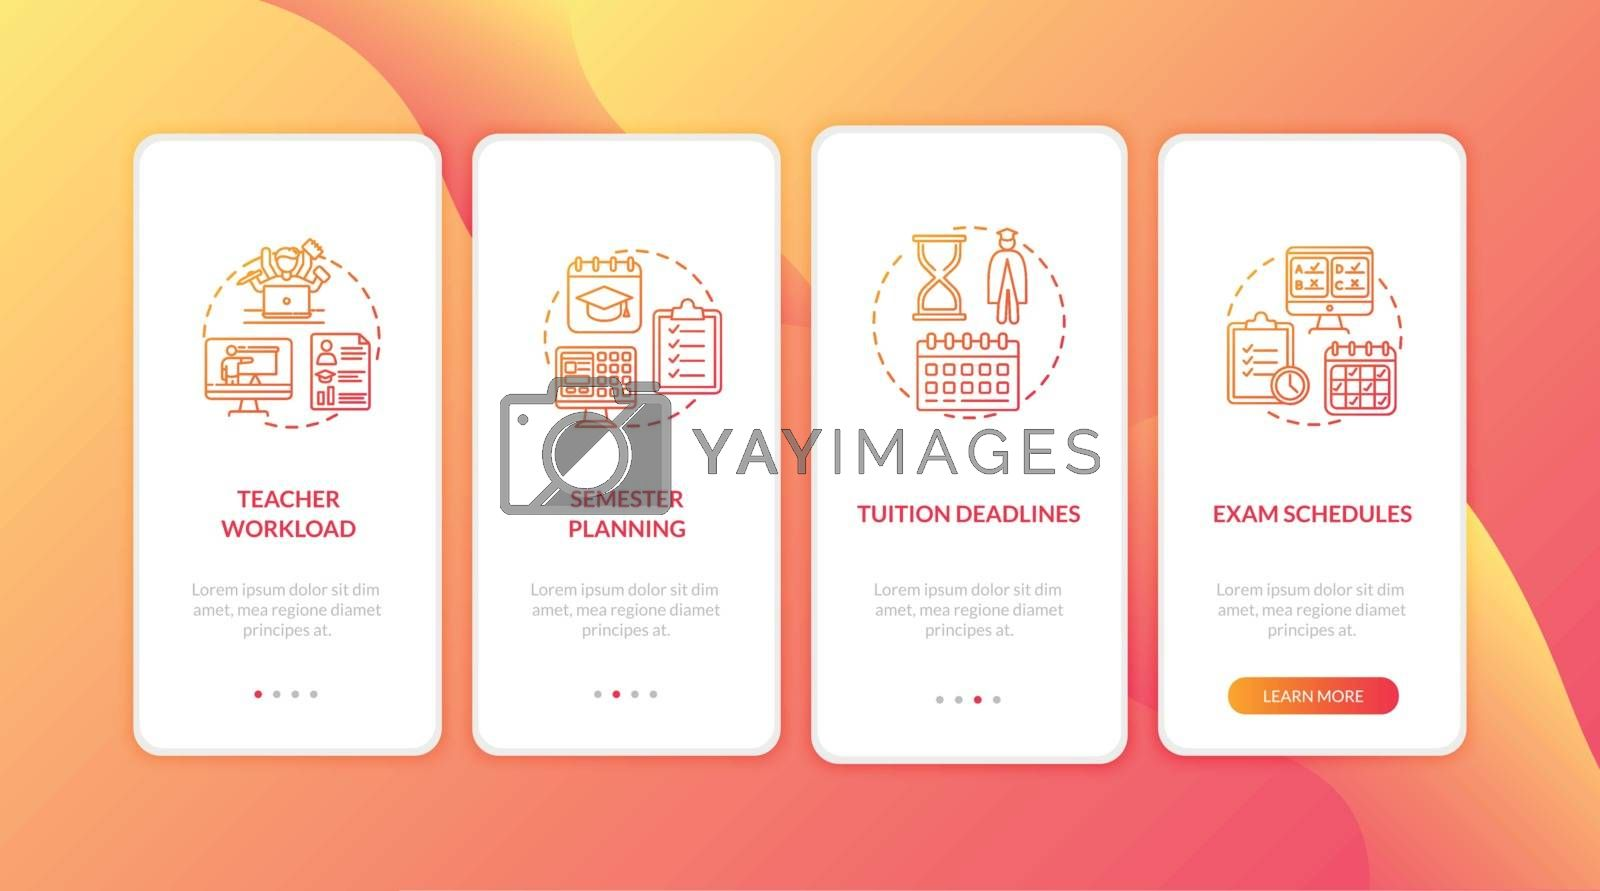 Distance learning elements onboarding mobile app page screen with concepts. Tuition deadlines. E learning walkthrough 4 steps graphic instructions. UI vector template with RGB color illustrations